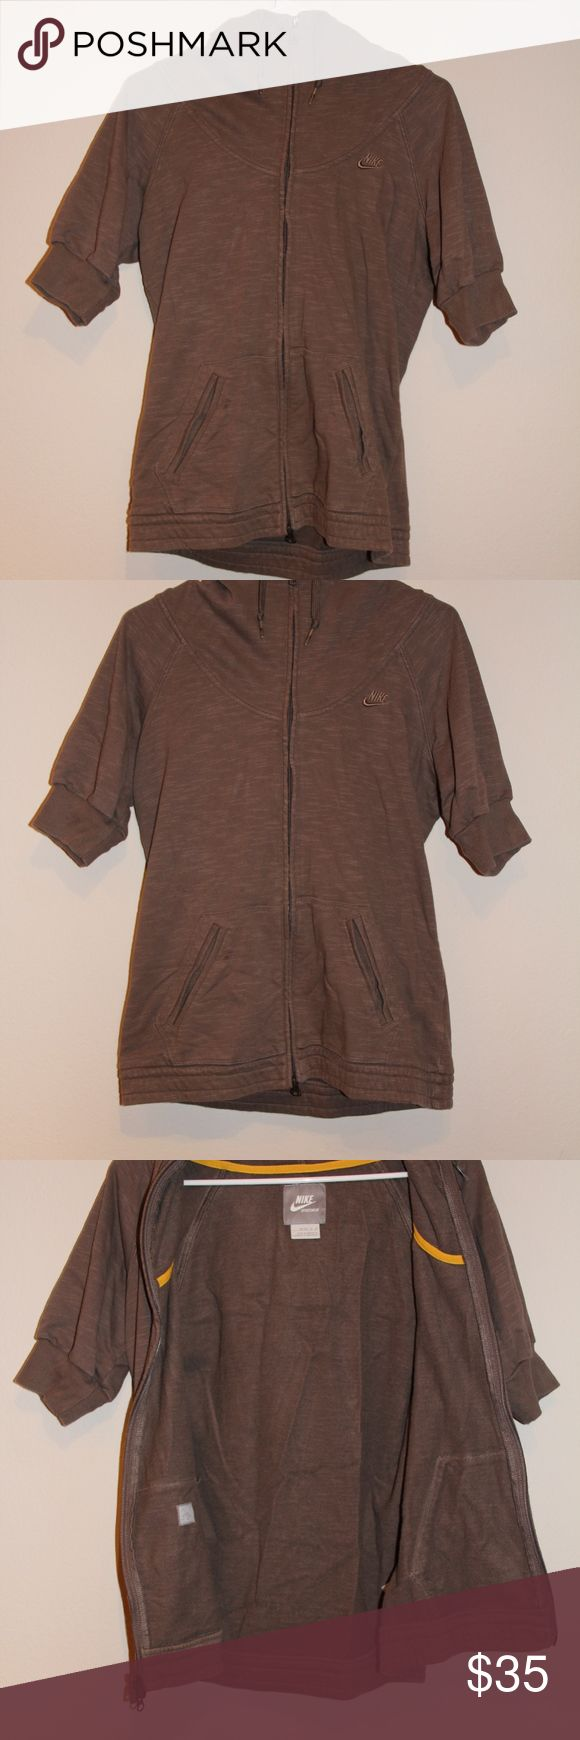 Nike Brown Beige Zip Up Hoodie Sweatshirt Rare style Brownish Beige color Nike Zip up Sweatshirt Size Medium 8 short sleeve with Waist pockets. Sweatshirt is in excellent condition with a hood and has no rips stains marks or tears anywhere. Nike Tops Sweatshirts & Hoodies